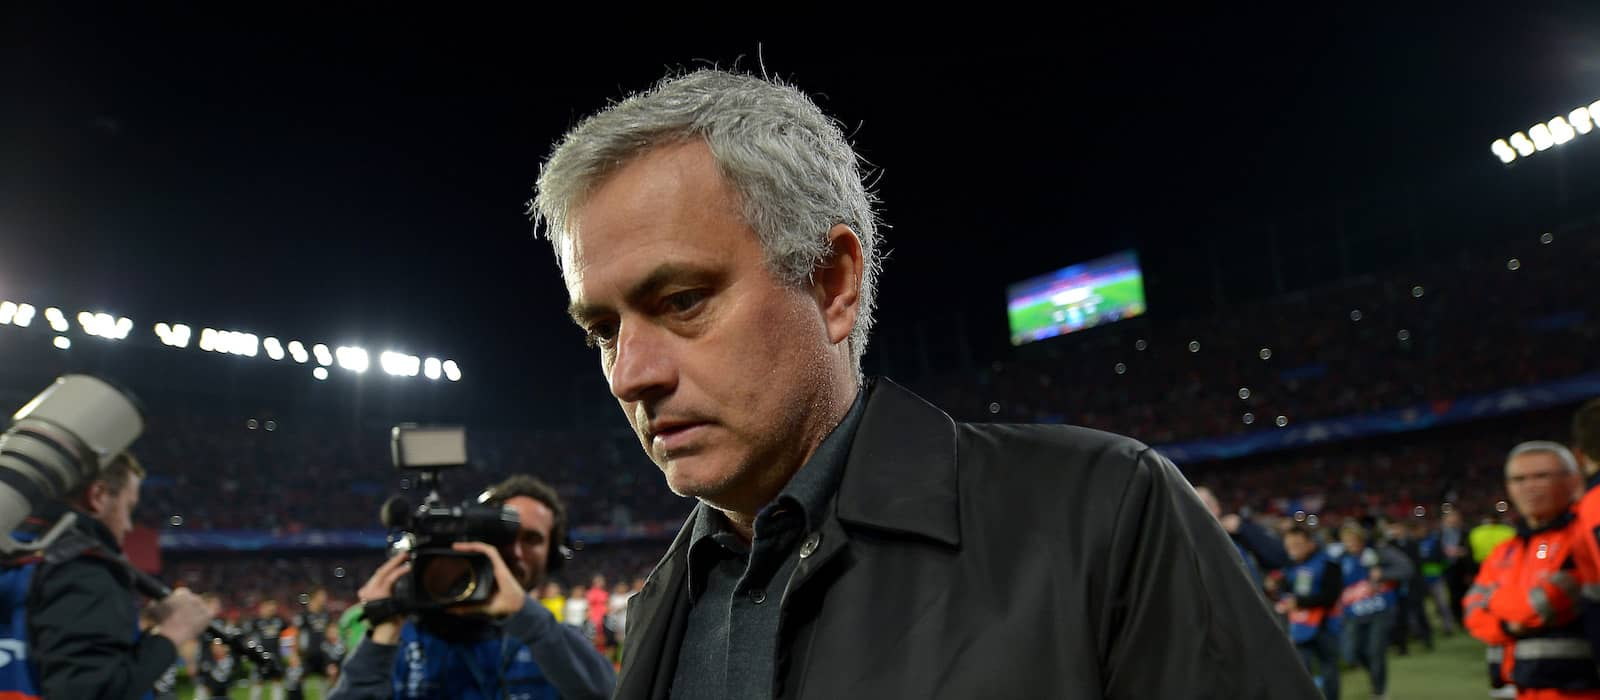 Jose Mourinho reiterates admiration for Brazilian players ahead of summer transfer window